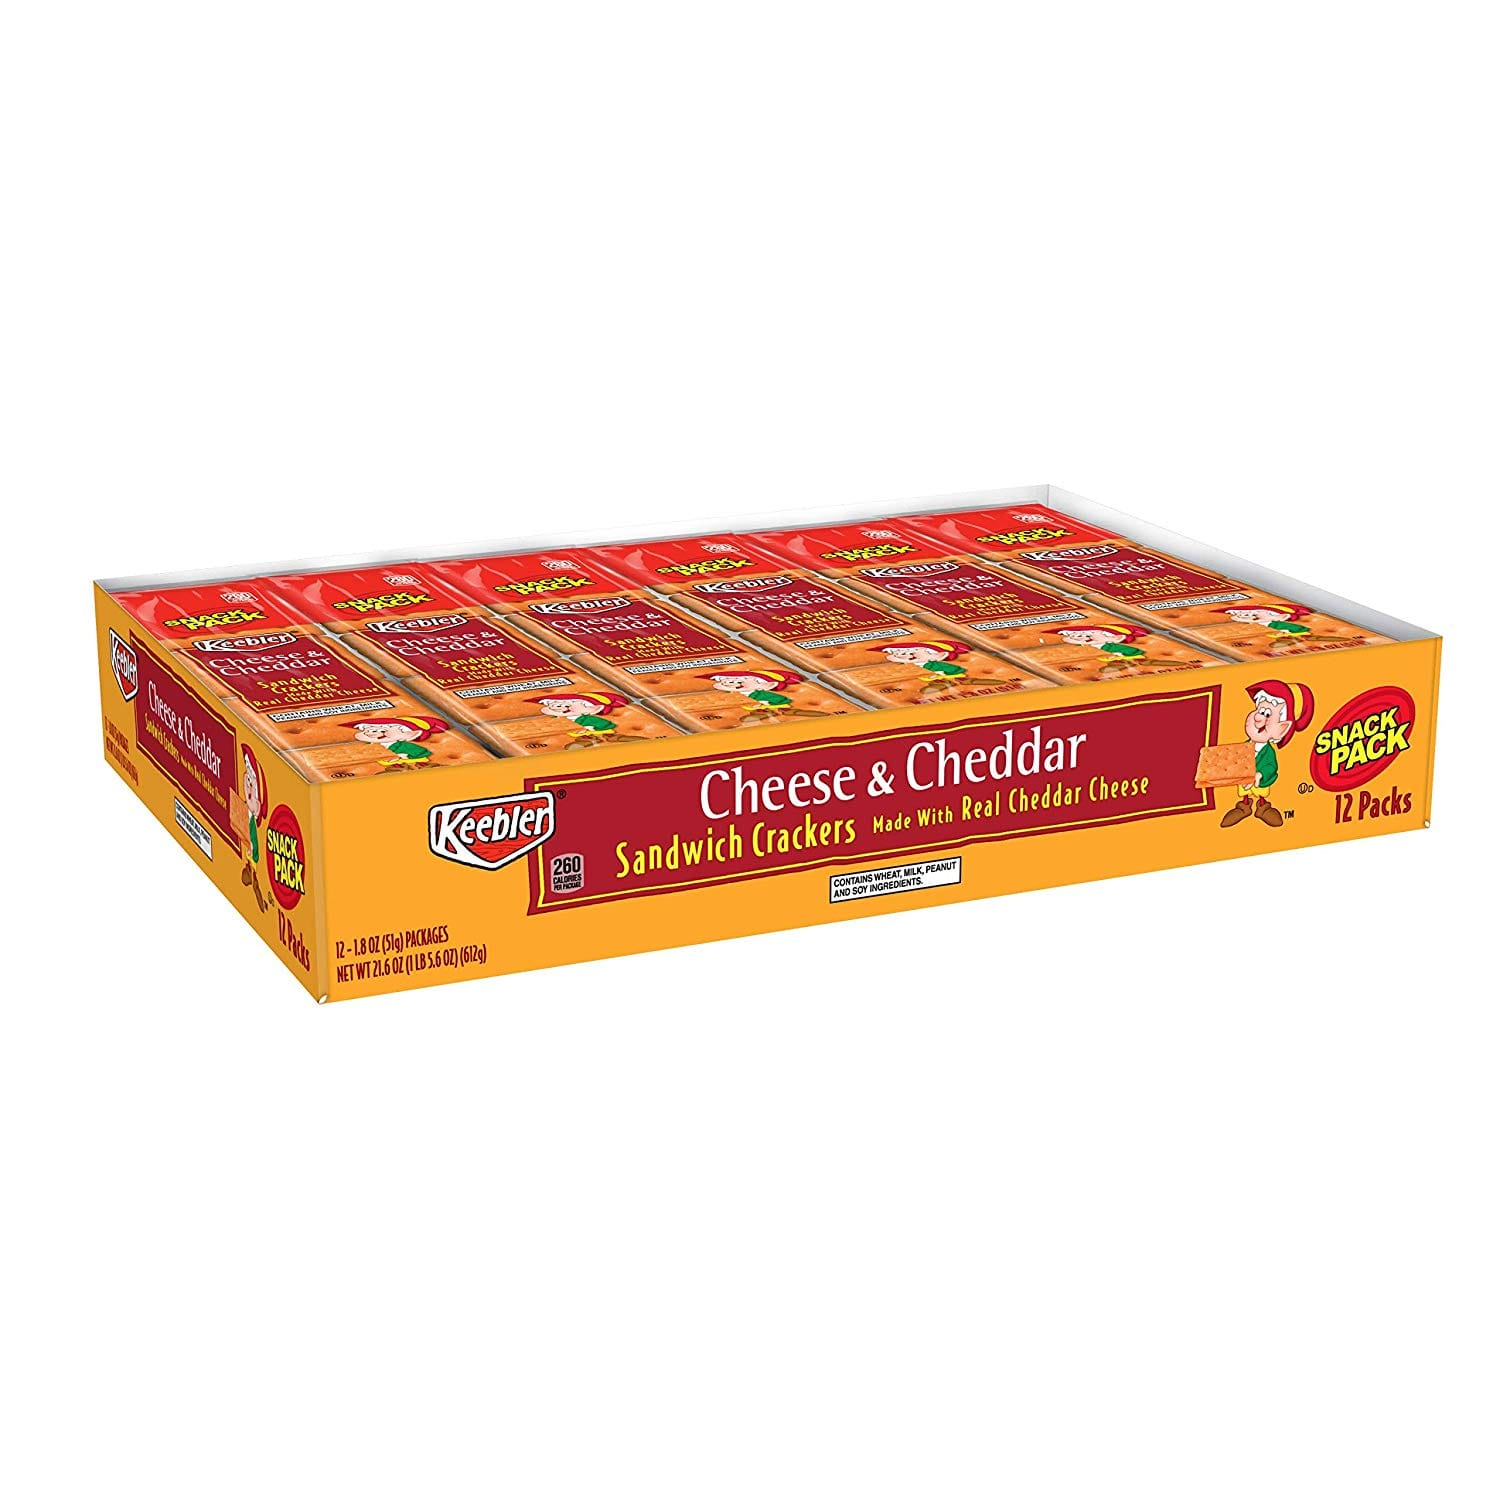 Keebler Cheese and Cheddar Sandwich Crackers, Single Serve, 1.8 oz Packages (12 Count): As low as $3.82 w/S&S